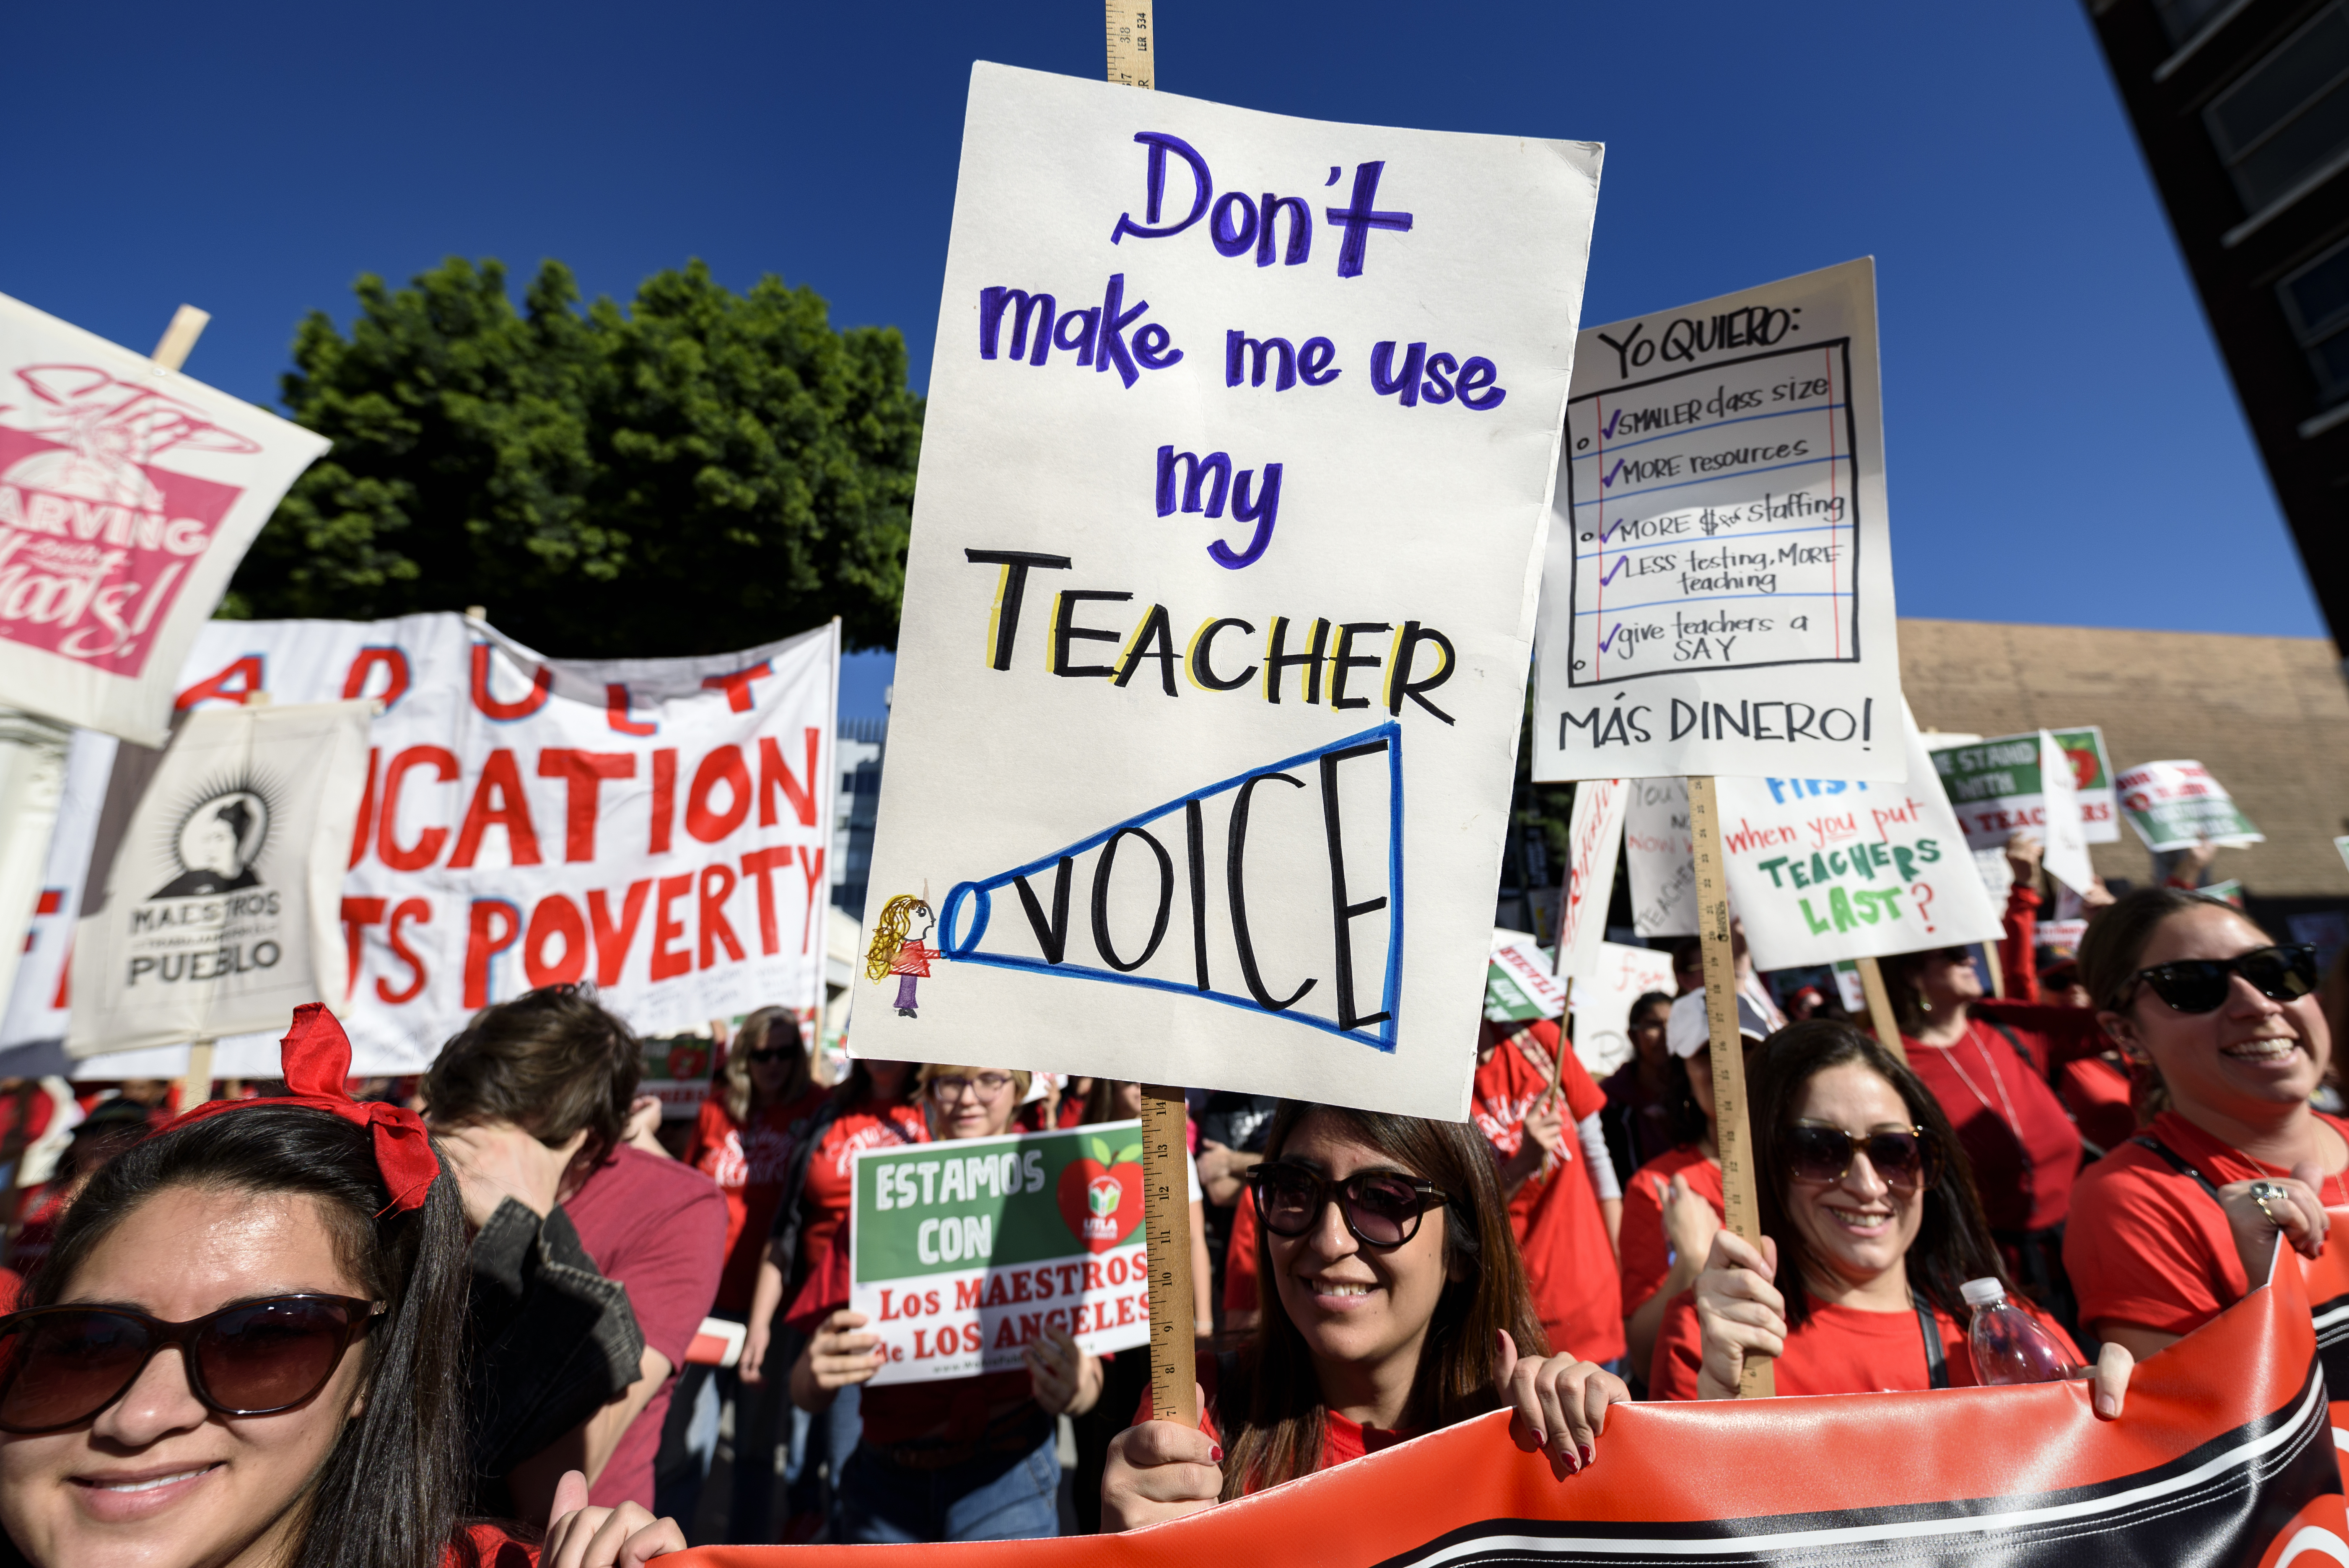 Teachers and supporters of public education march against education funding cuts during the March for Public Education in Los Angeles, California on Dec. 15, 2018.